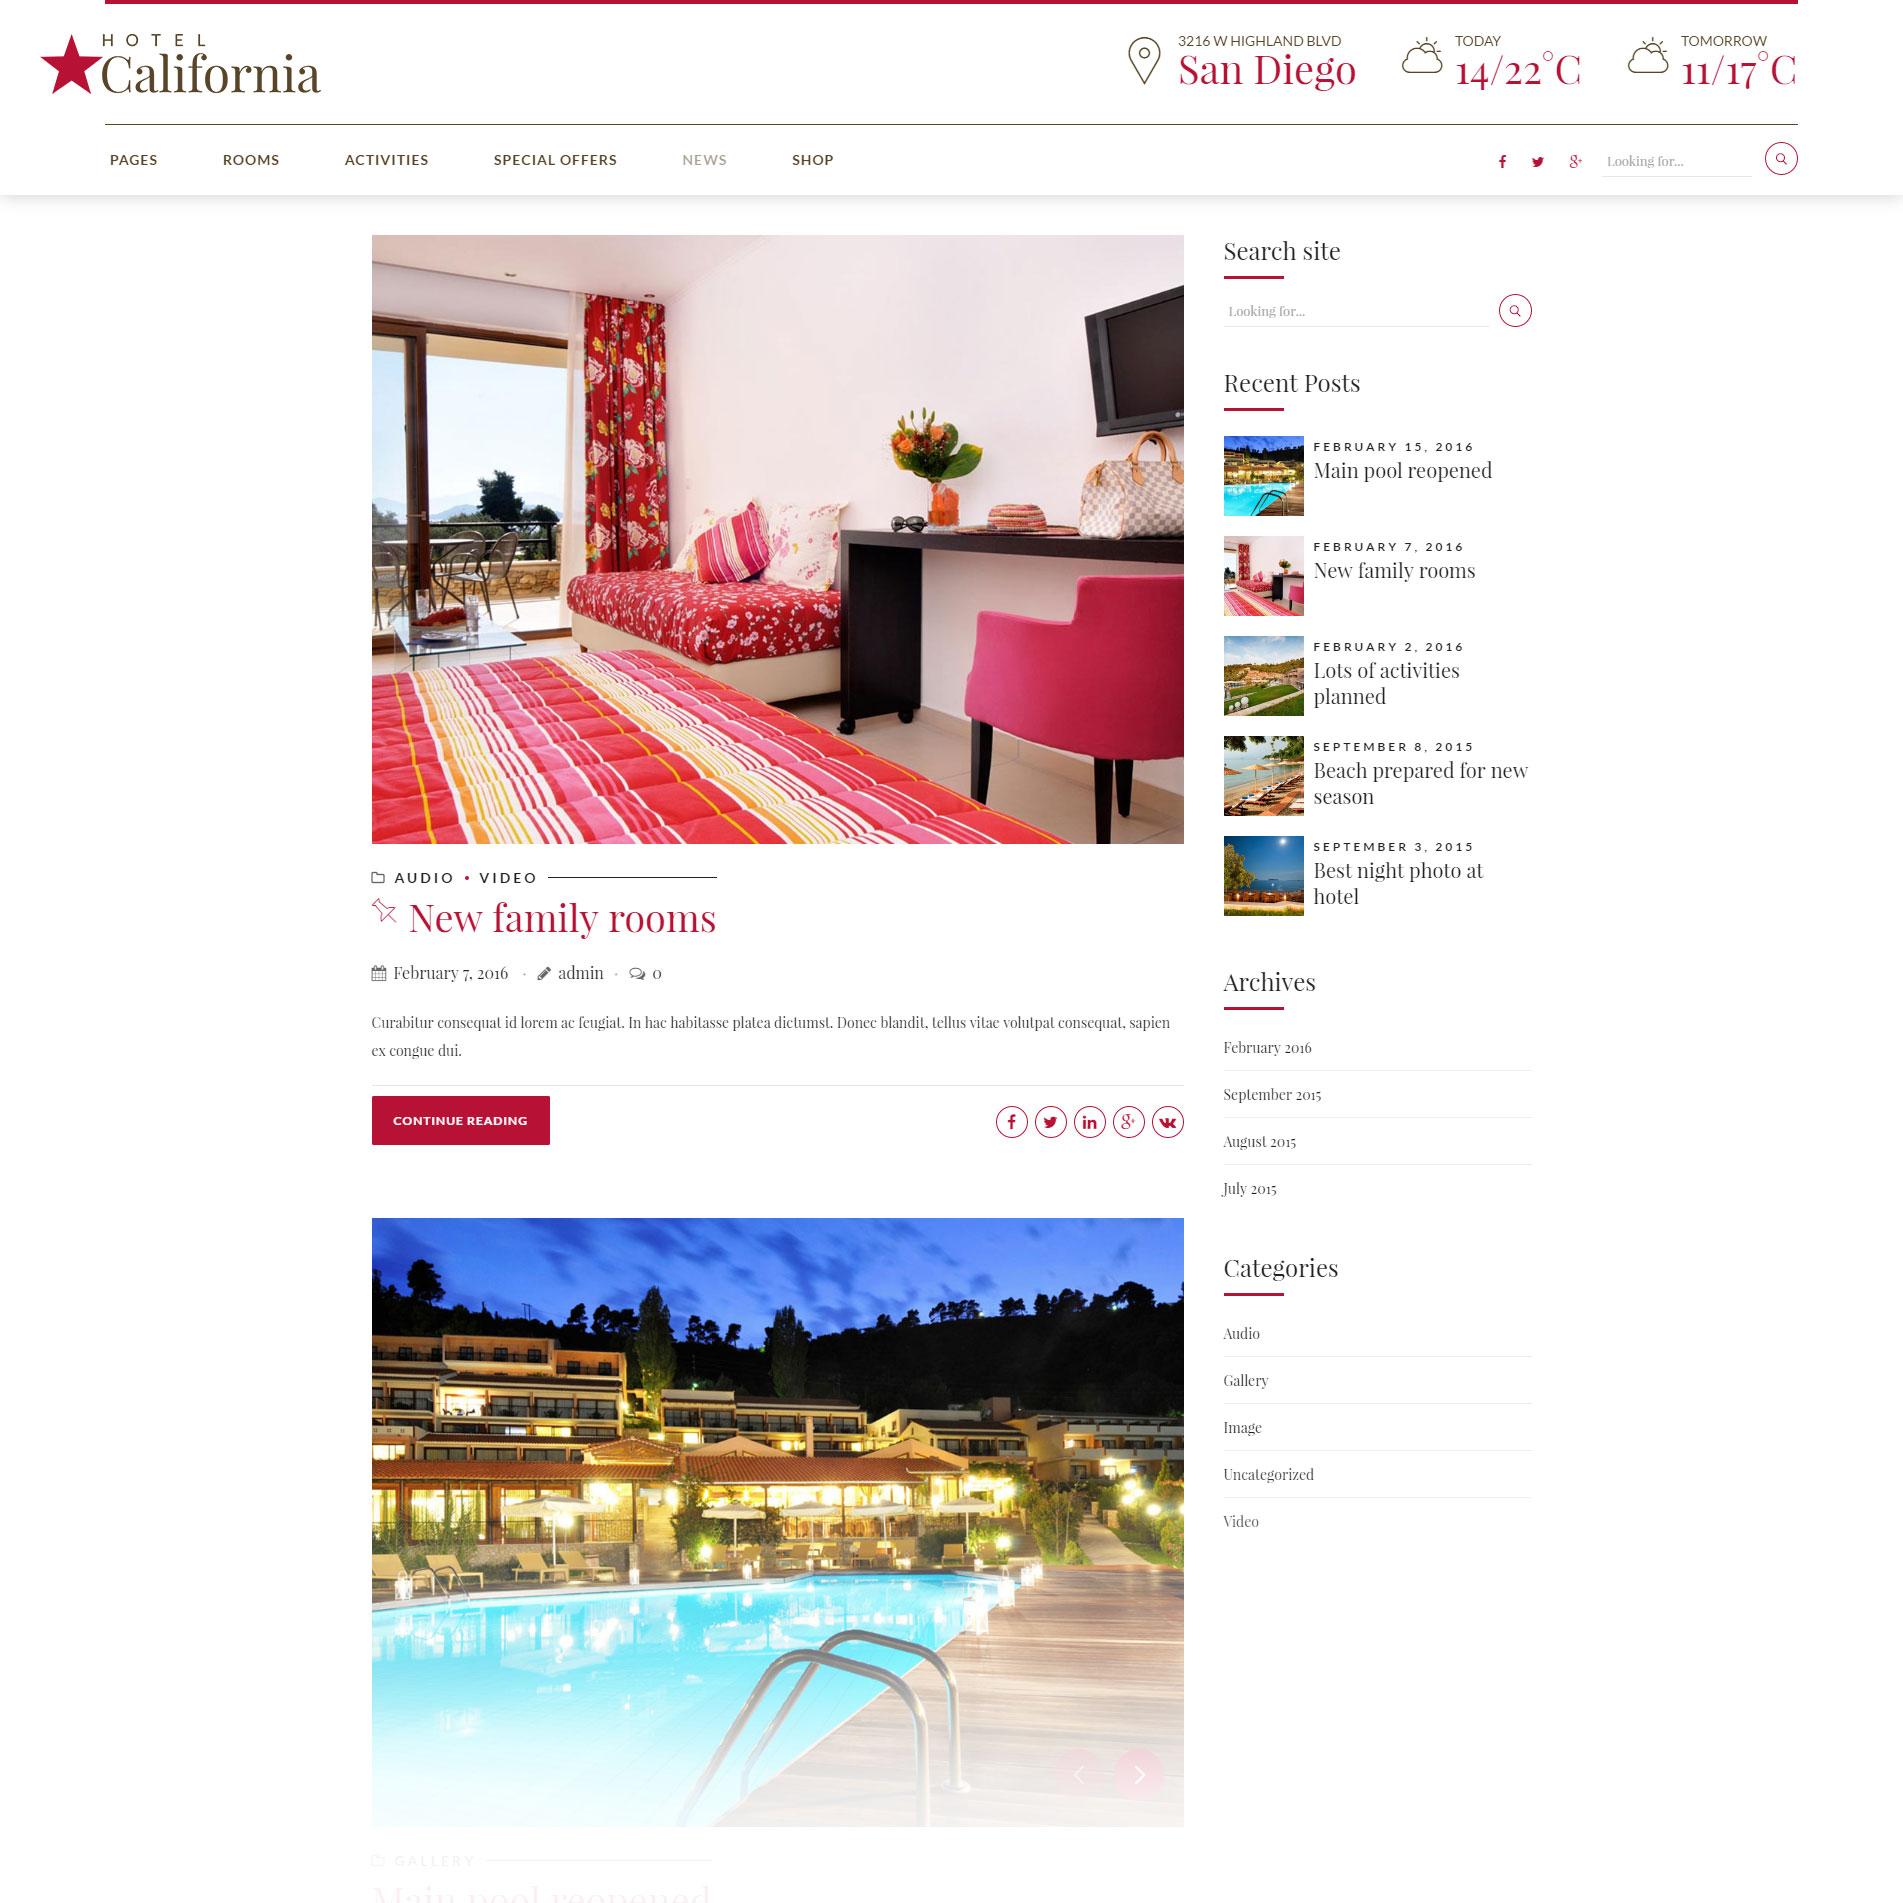 http://hotel.bold-themes.com/wp-content/uploads/2016/03/screenshot-05.jpg